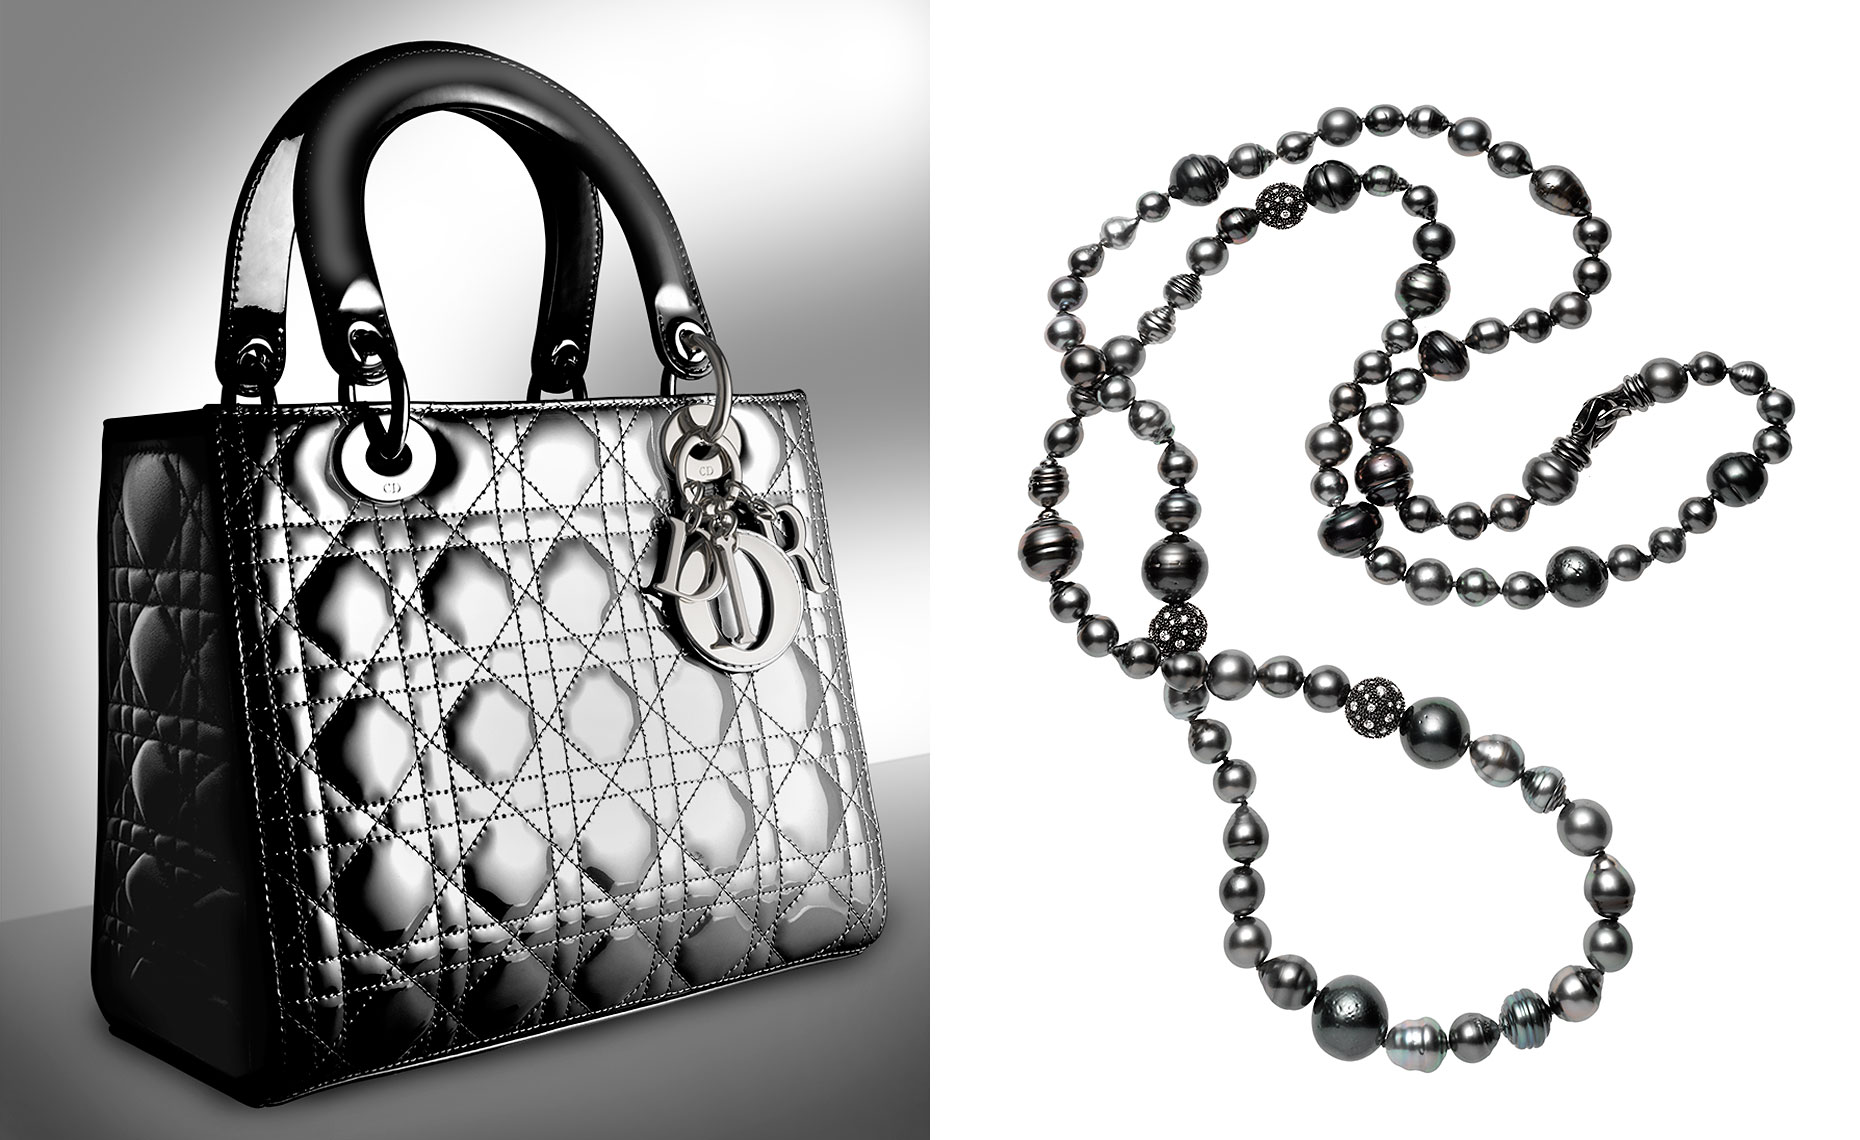 Lady Dior handbag in patent cannage and black pearls